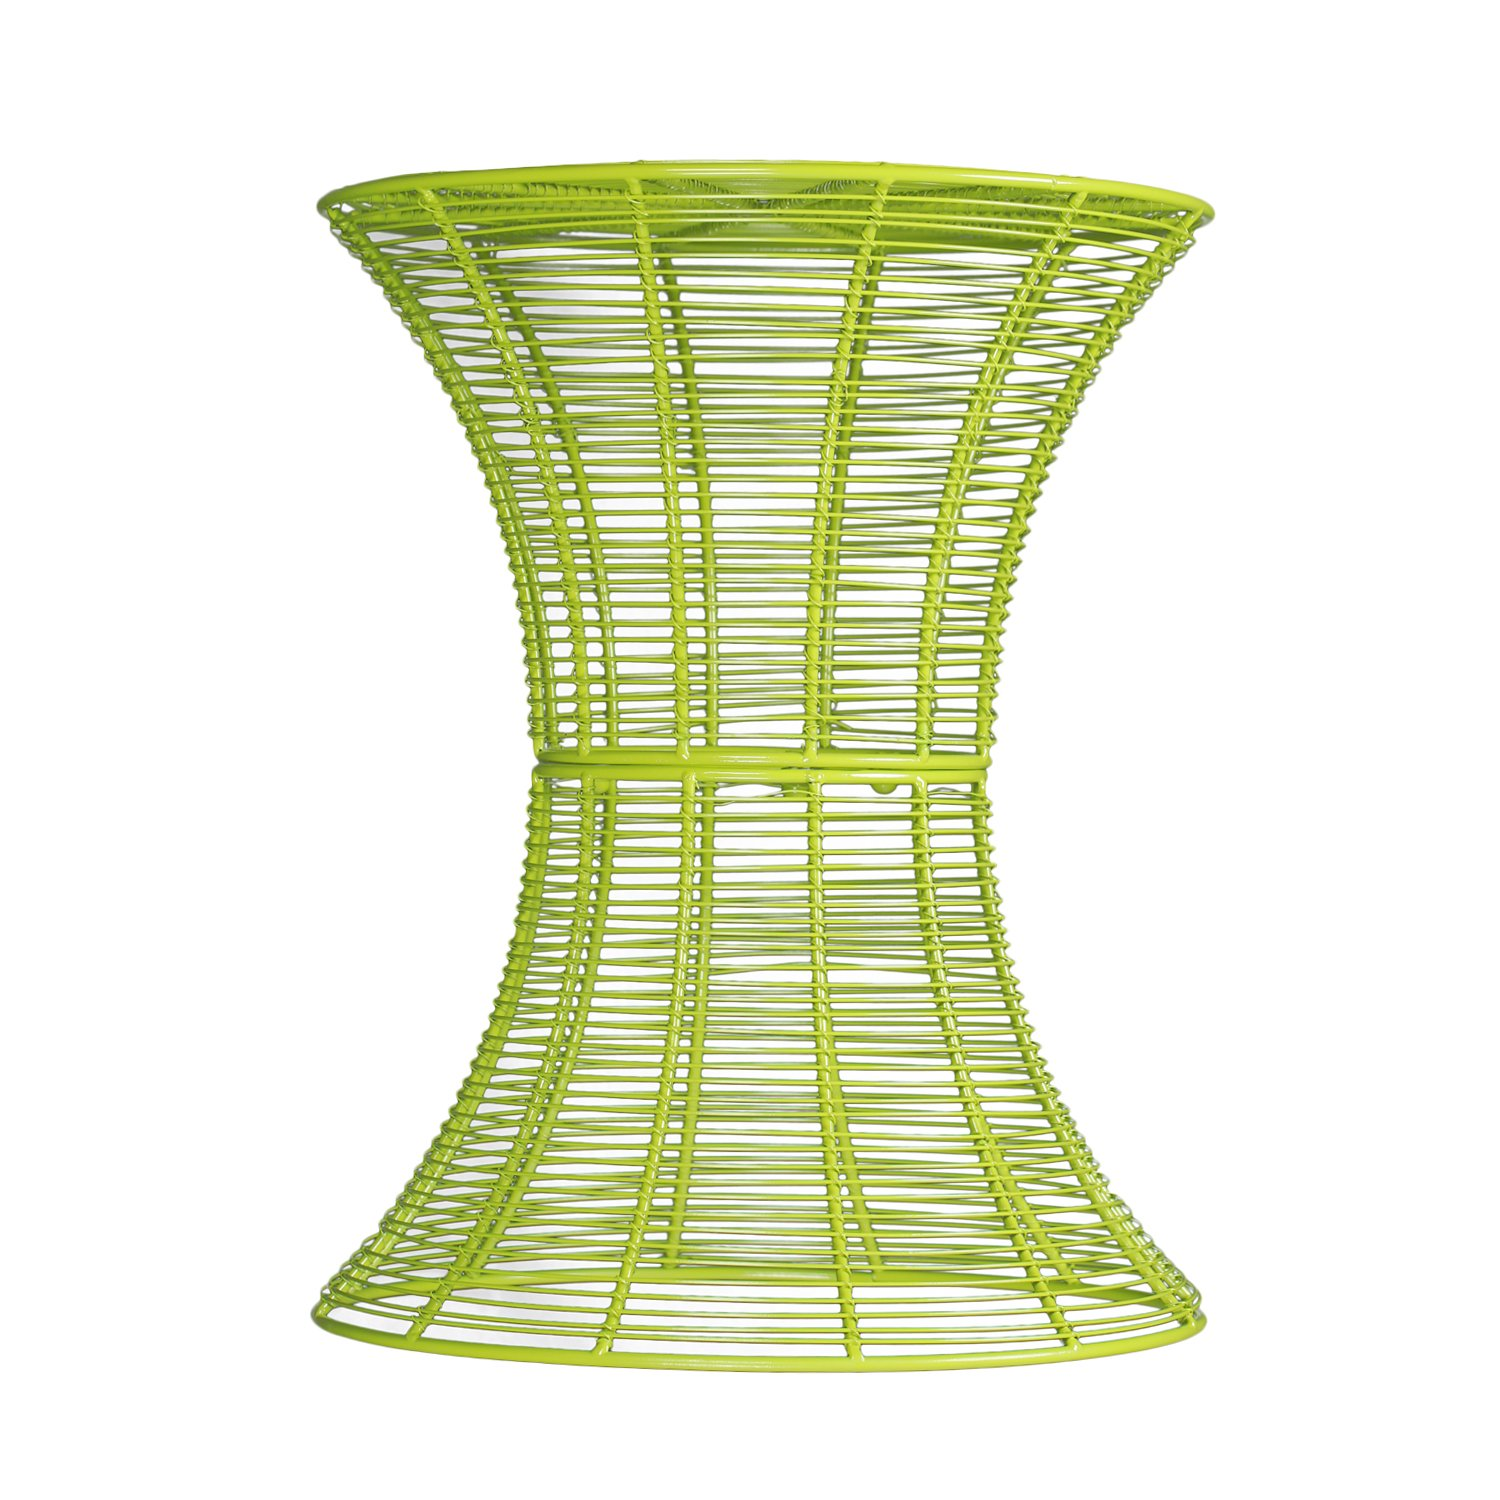 Adeco Accent Round Starburst End/Side/Tea Table, Iron Wire Weave Netting, For Outdoor Garden Patio